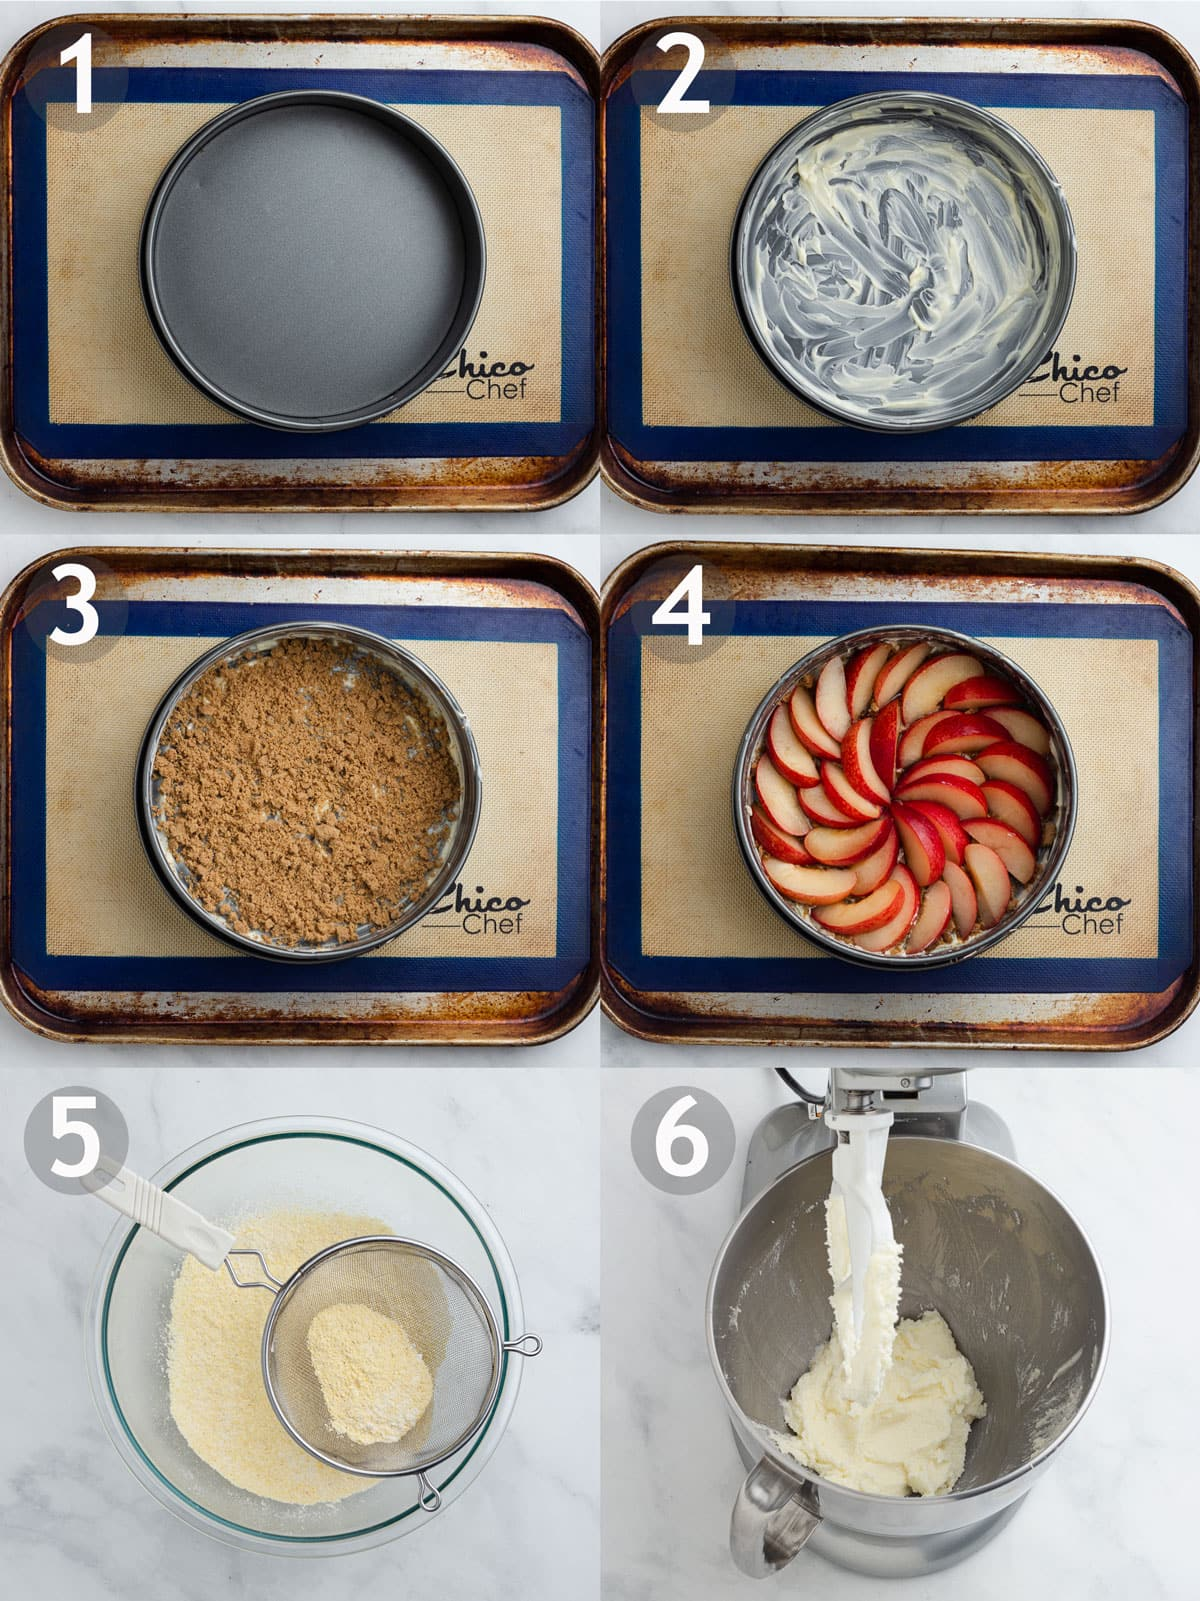 Steps to making cake including adding butter, sugar and plums to bottom of pan, sifting dry ingredients and creaming butter and sugar.